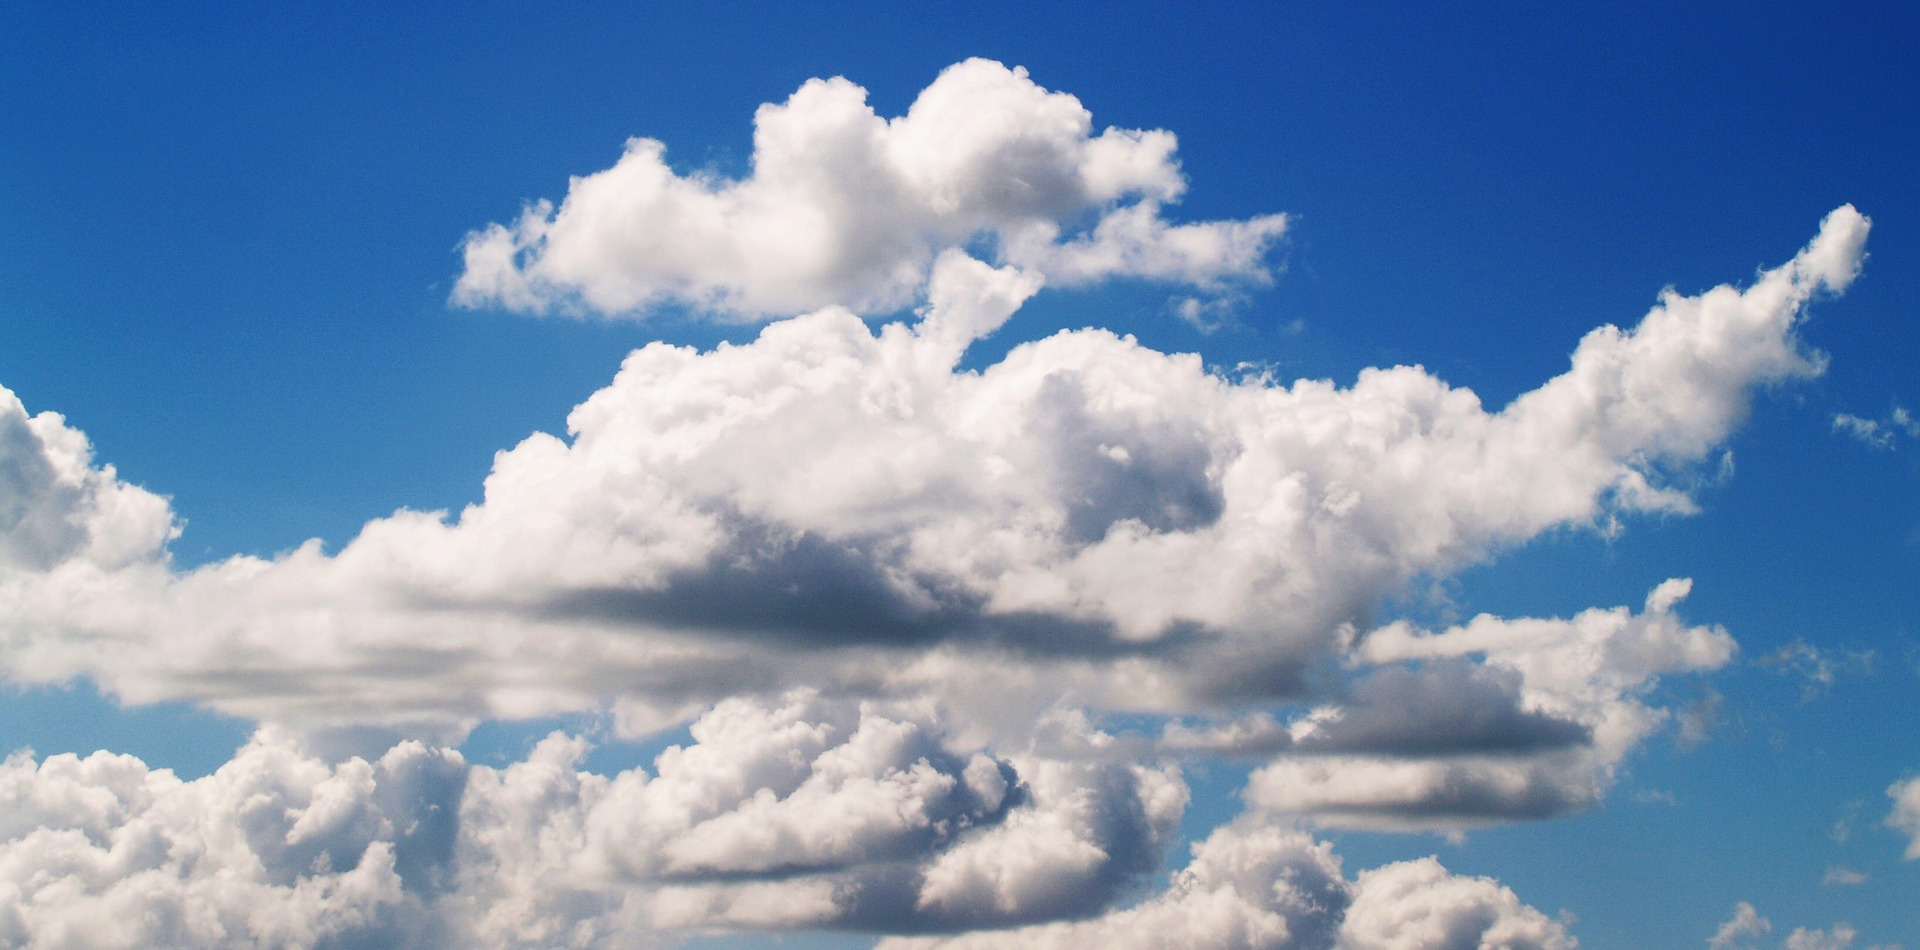 Image is a blue sky with clouds spread across. Ozone Therapy is provided by The Karlfeldt Center of Idaho.